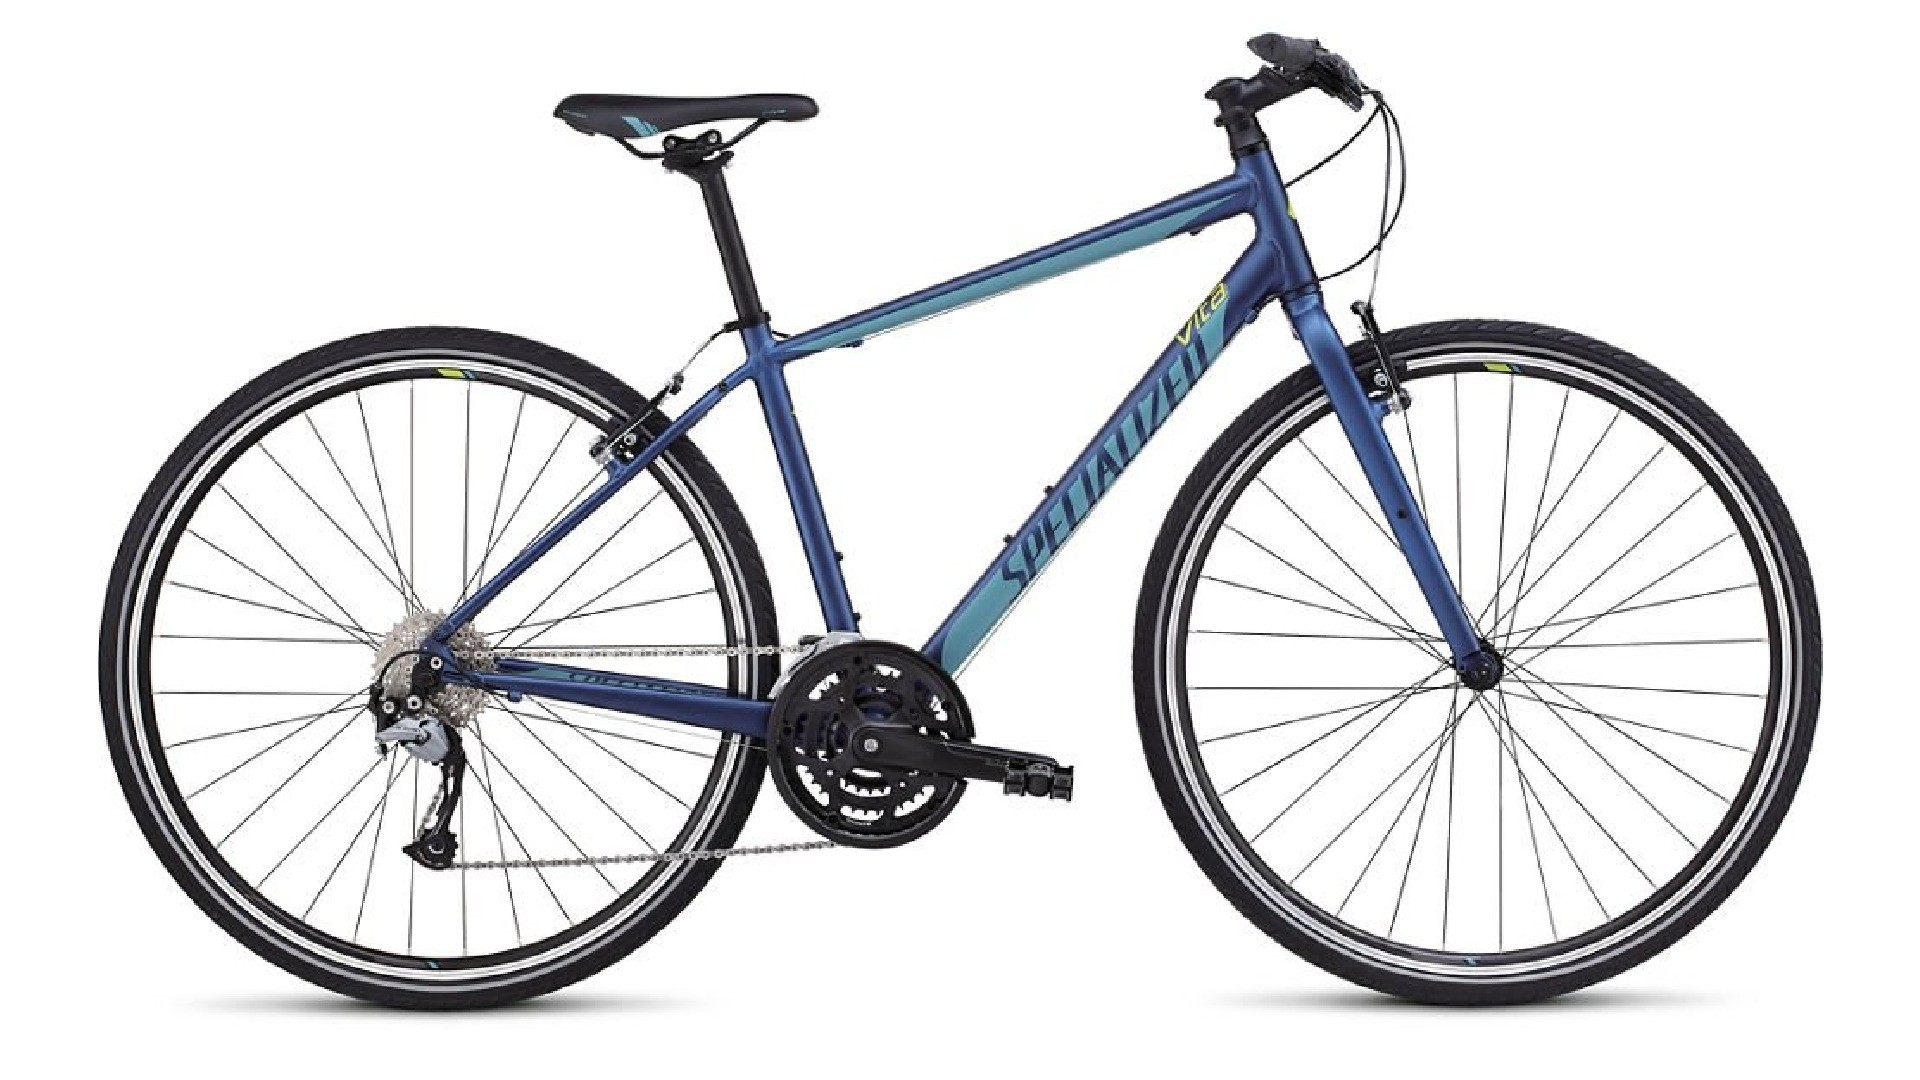 The Specialized Vita is a great commuter, city or leisure bike